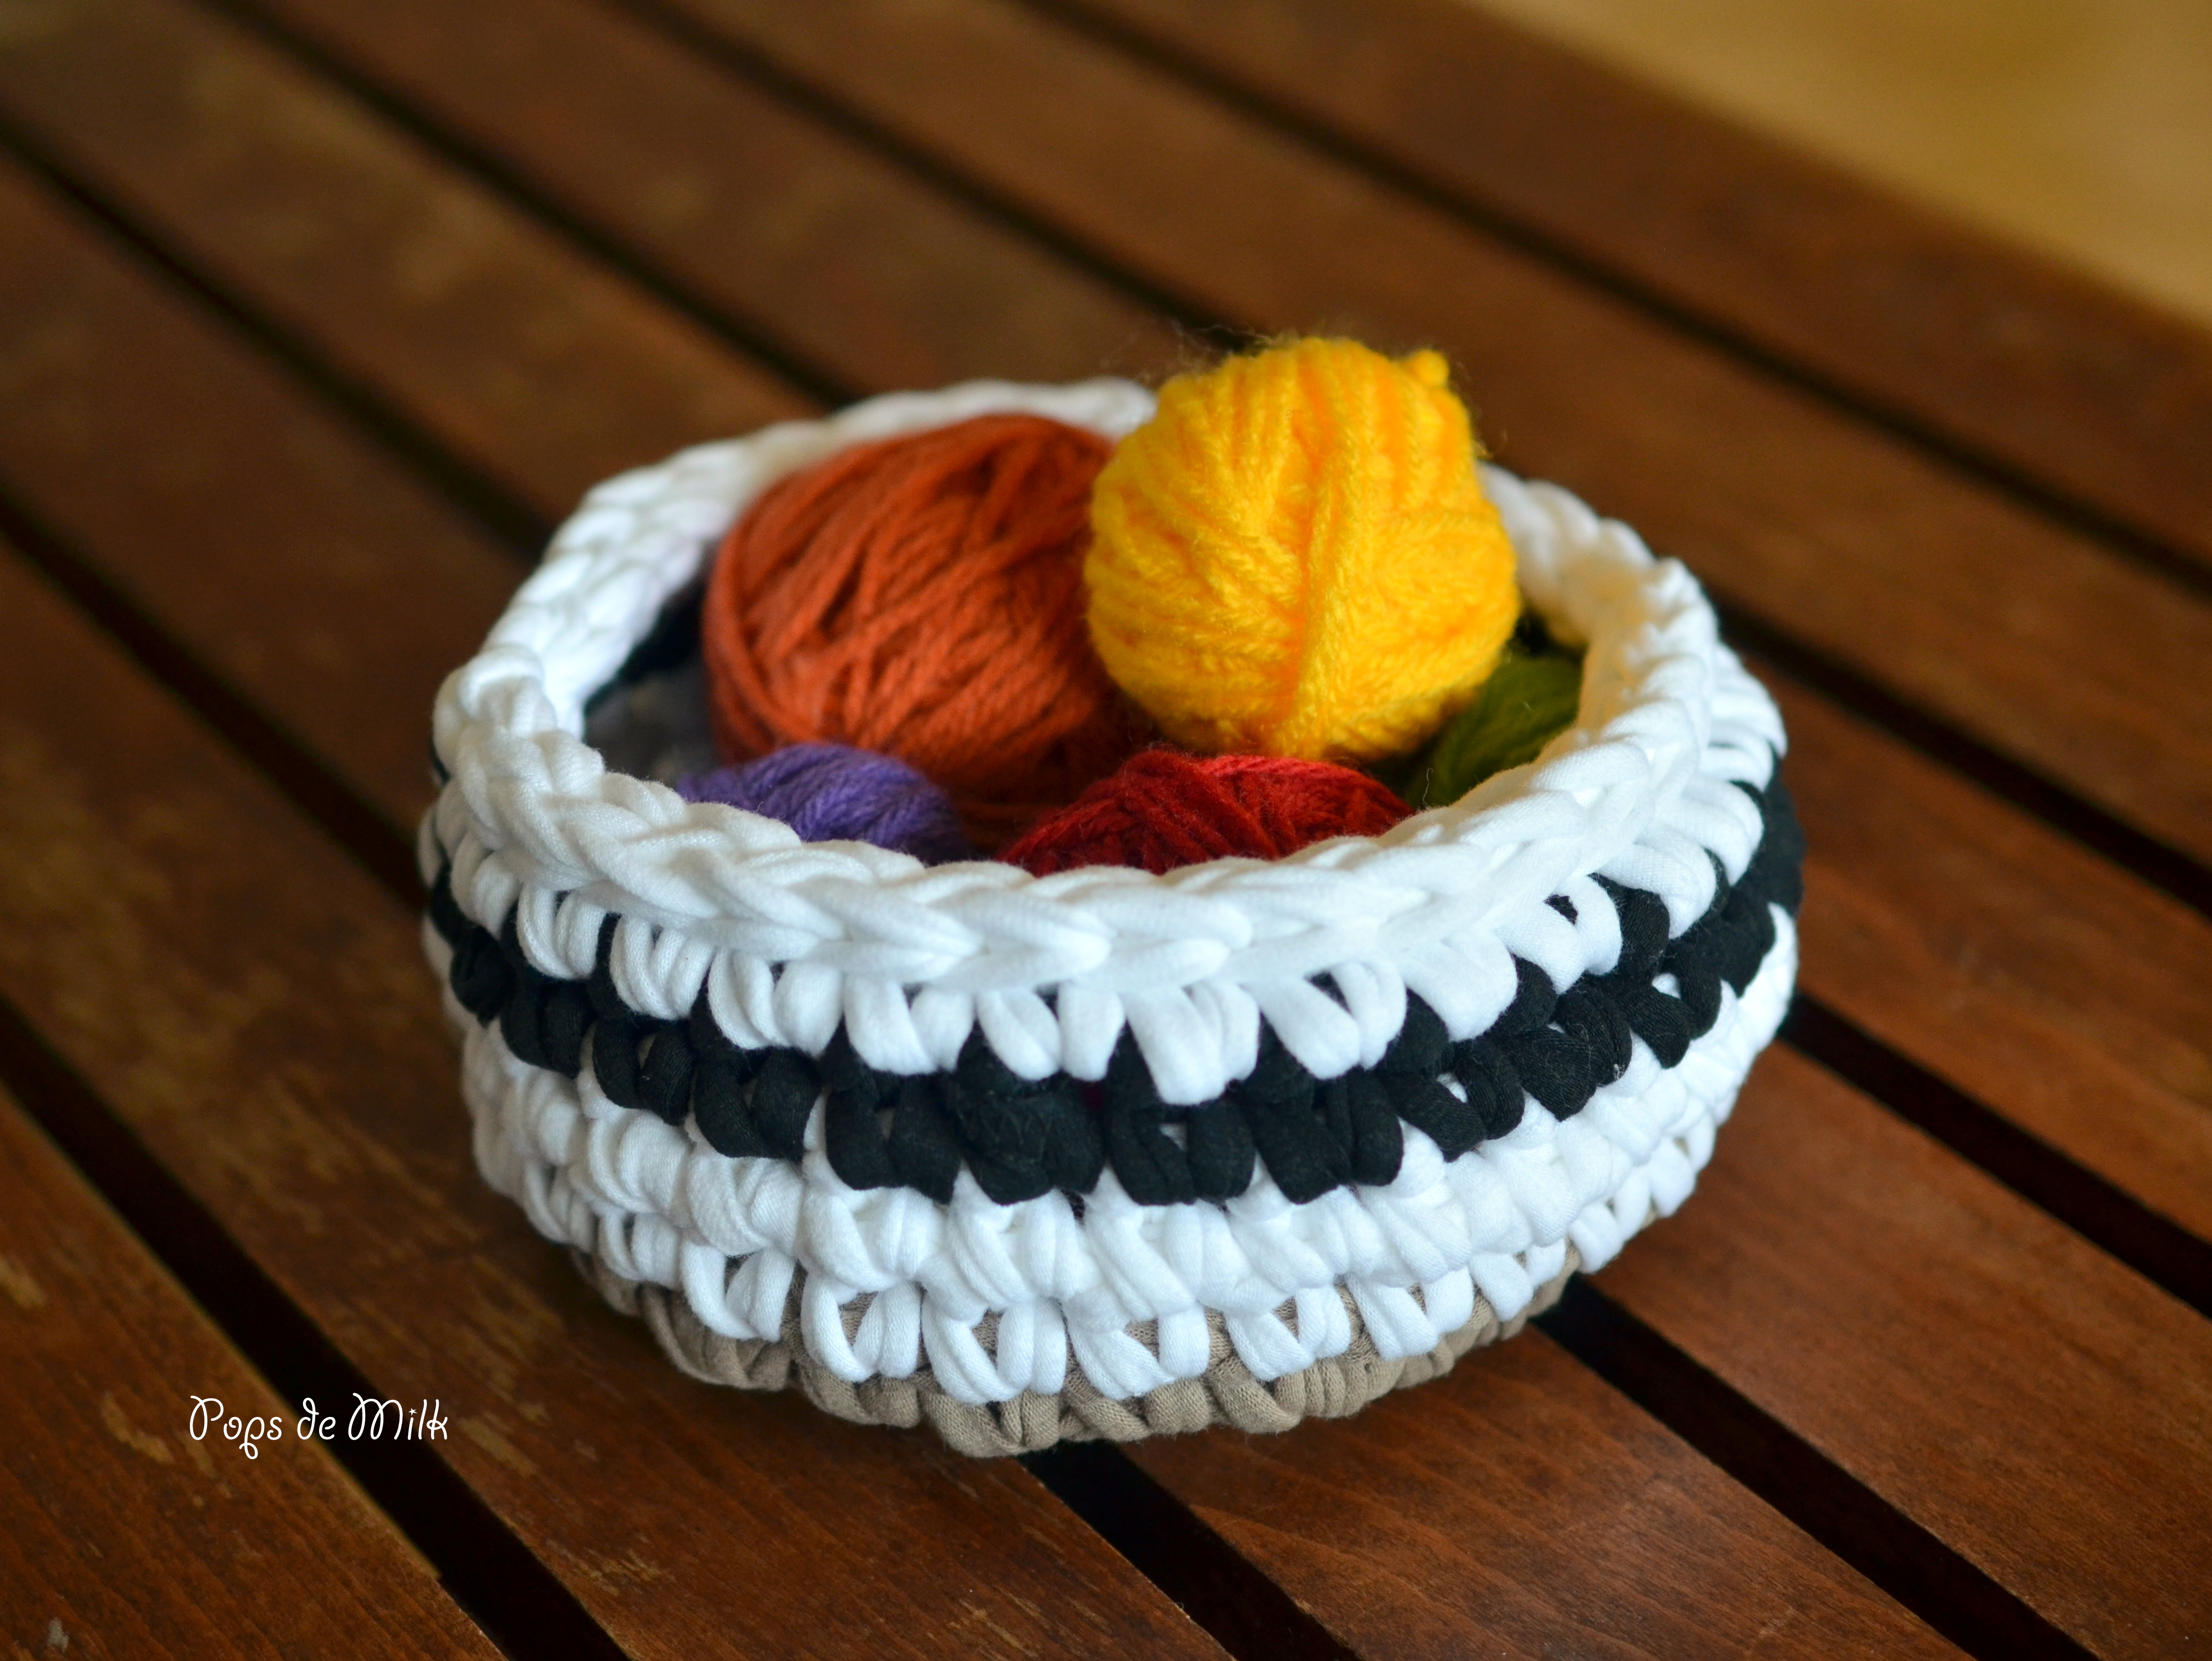 Crochet Tshirt Yarn Bowl - Pops de Milk